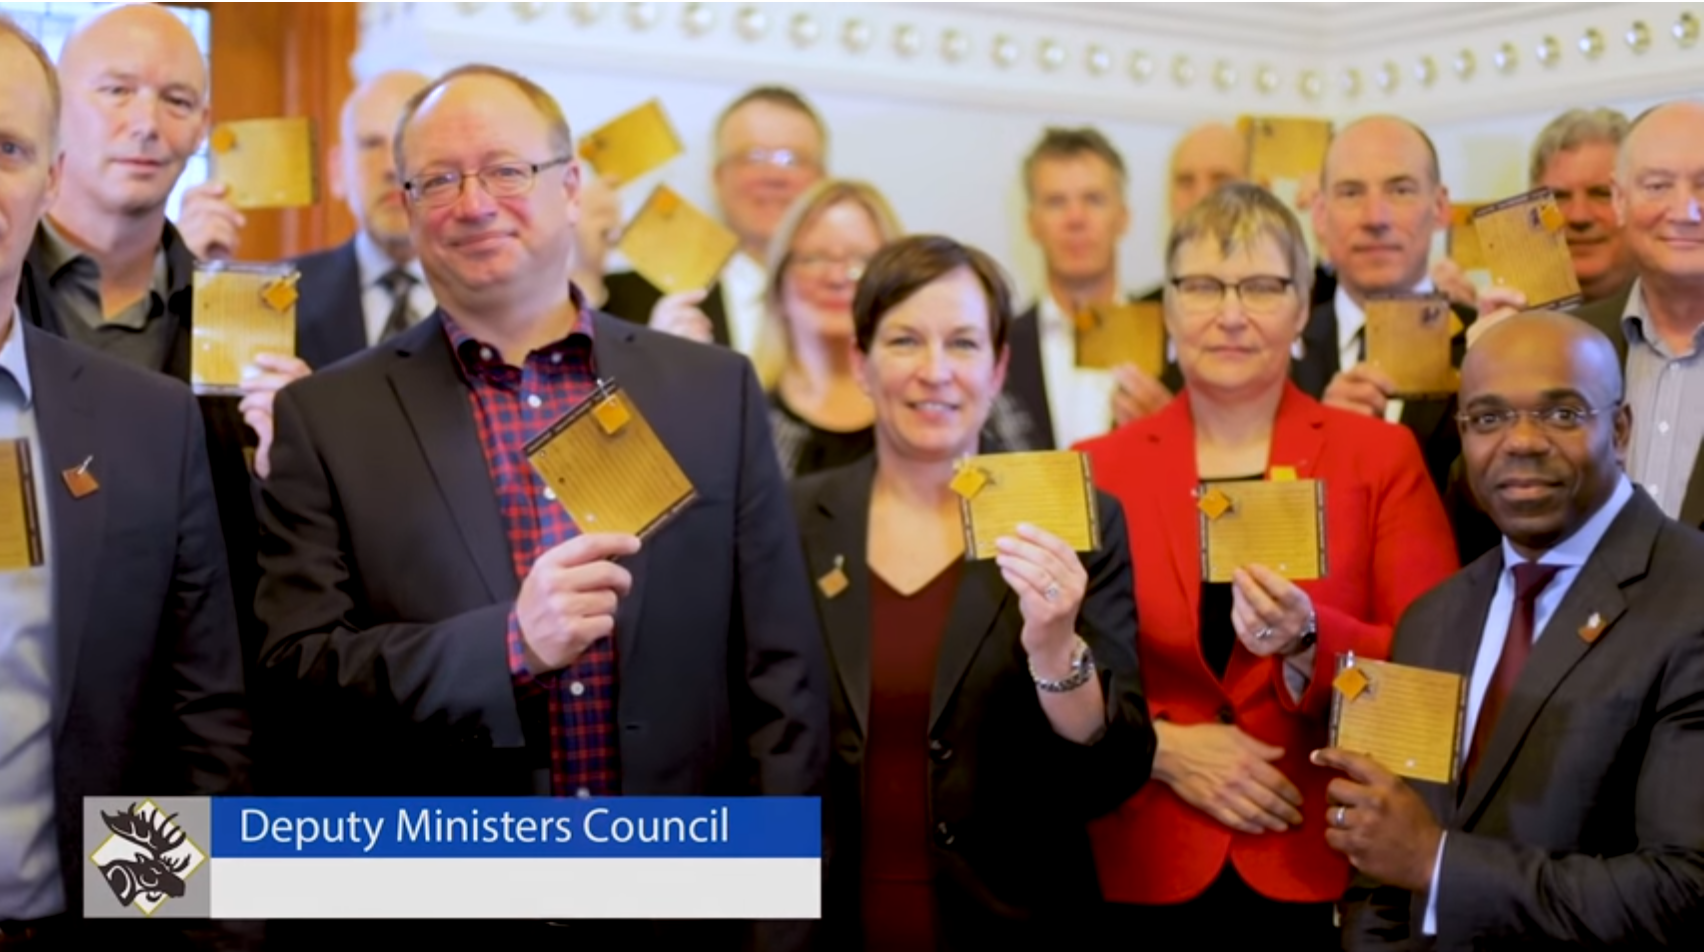 BC Provincial Deputy Ministers Council